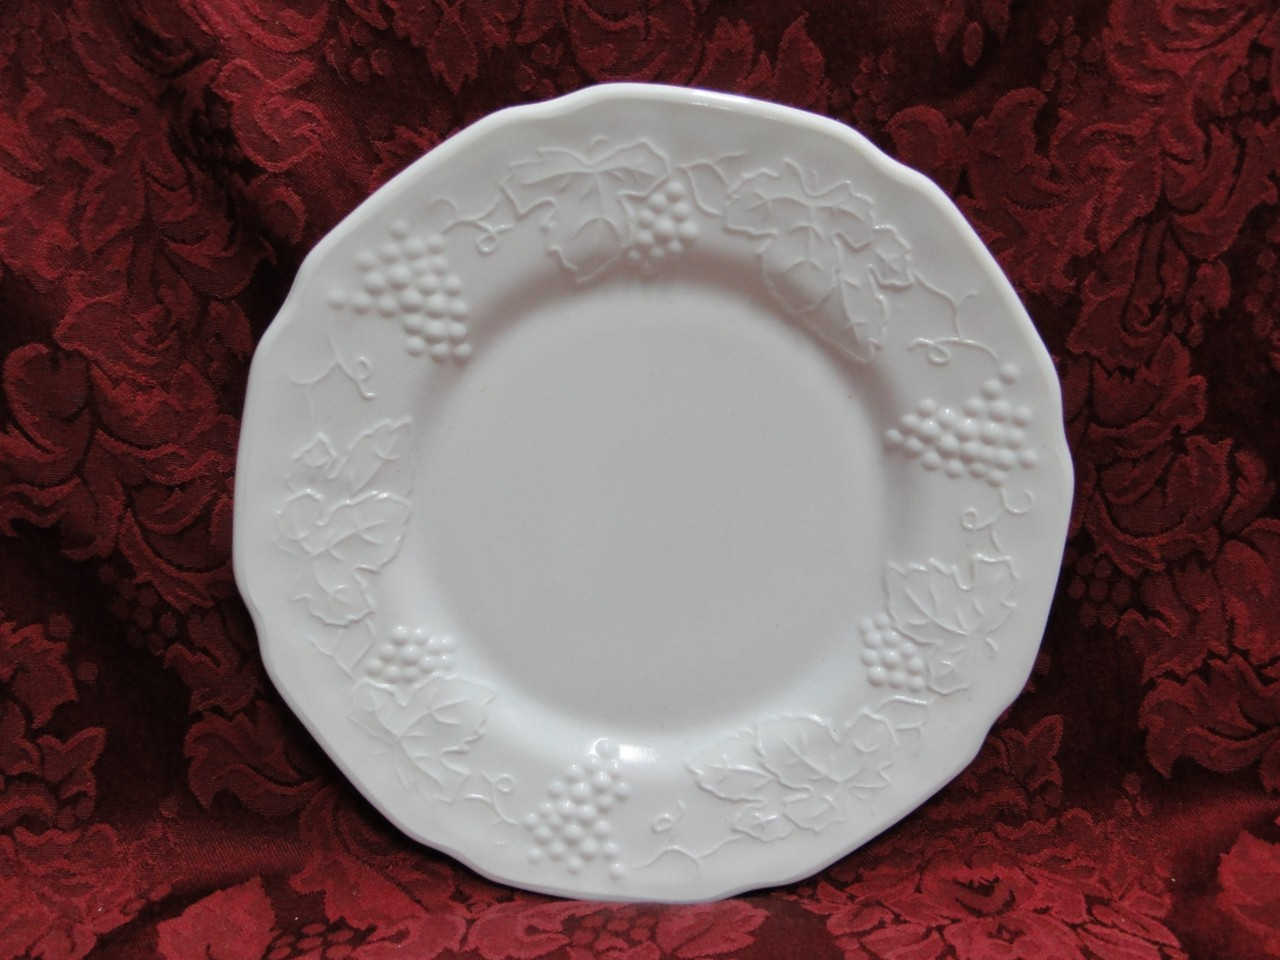 Colony-Harvest-White-Milk-Glass-Grapes-Leaves-Dinnerware-for-Special-Occasions